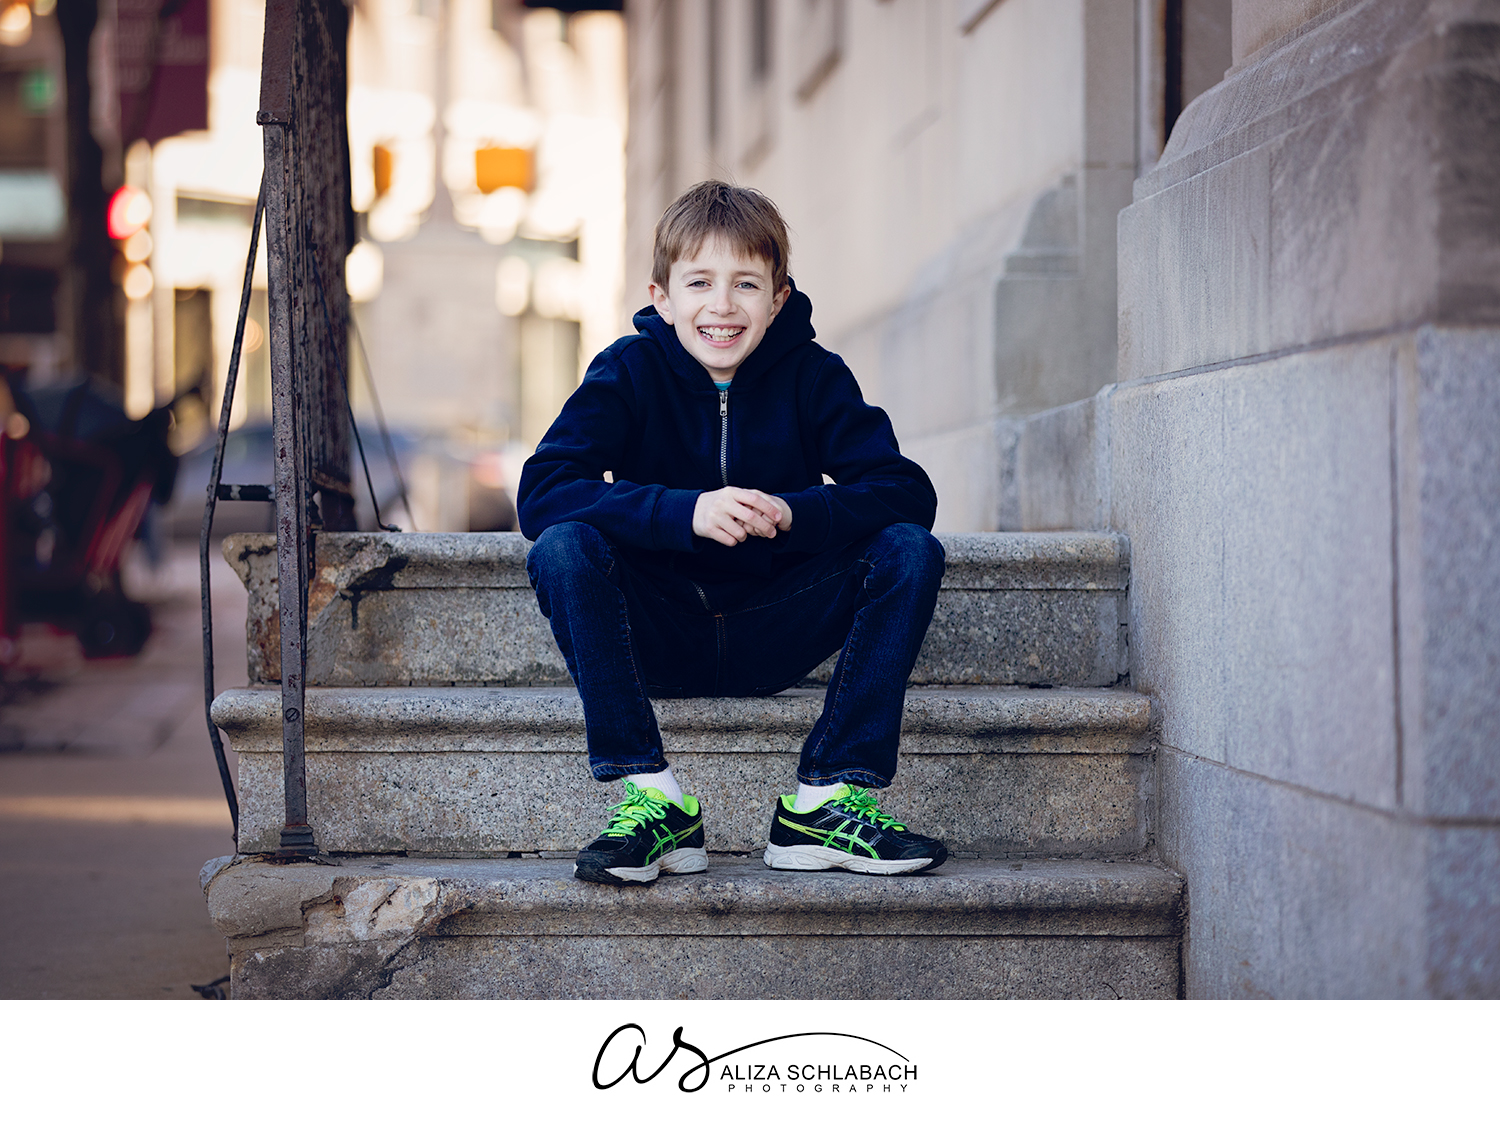 Outdoor photo of a boy laughing on some stone steps